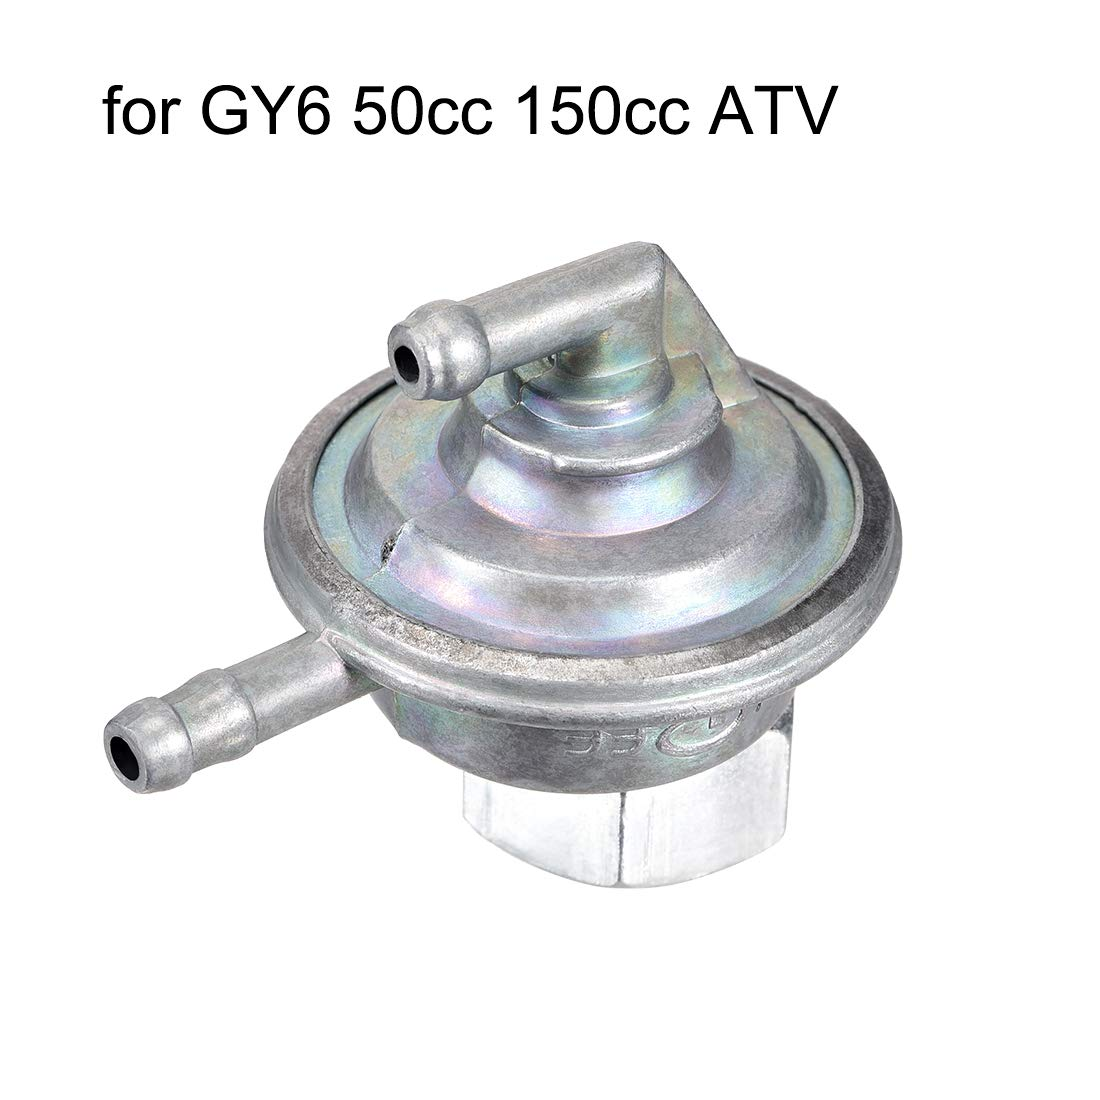 uxcell Gas Fuel Tank Switch Valve Petcock for Gy6 50cc 150cc ATV